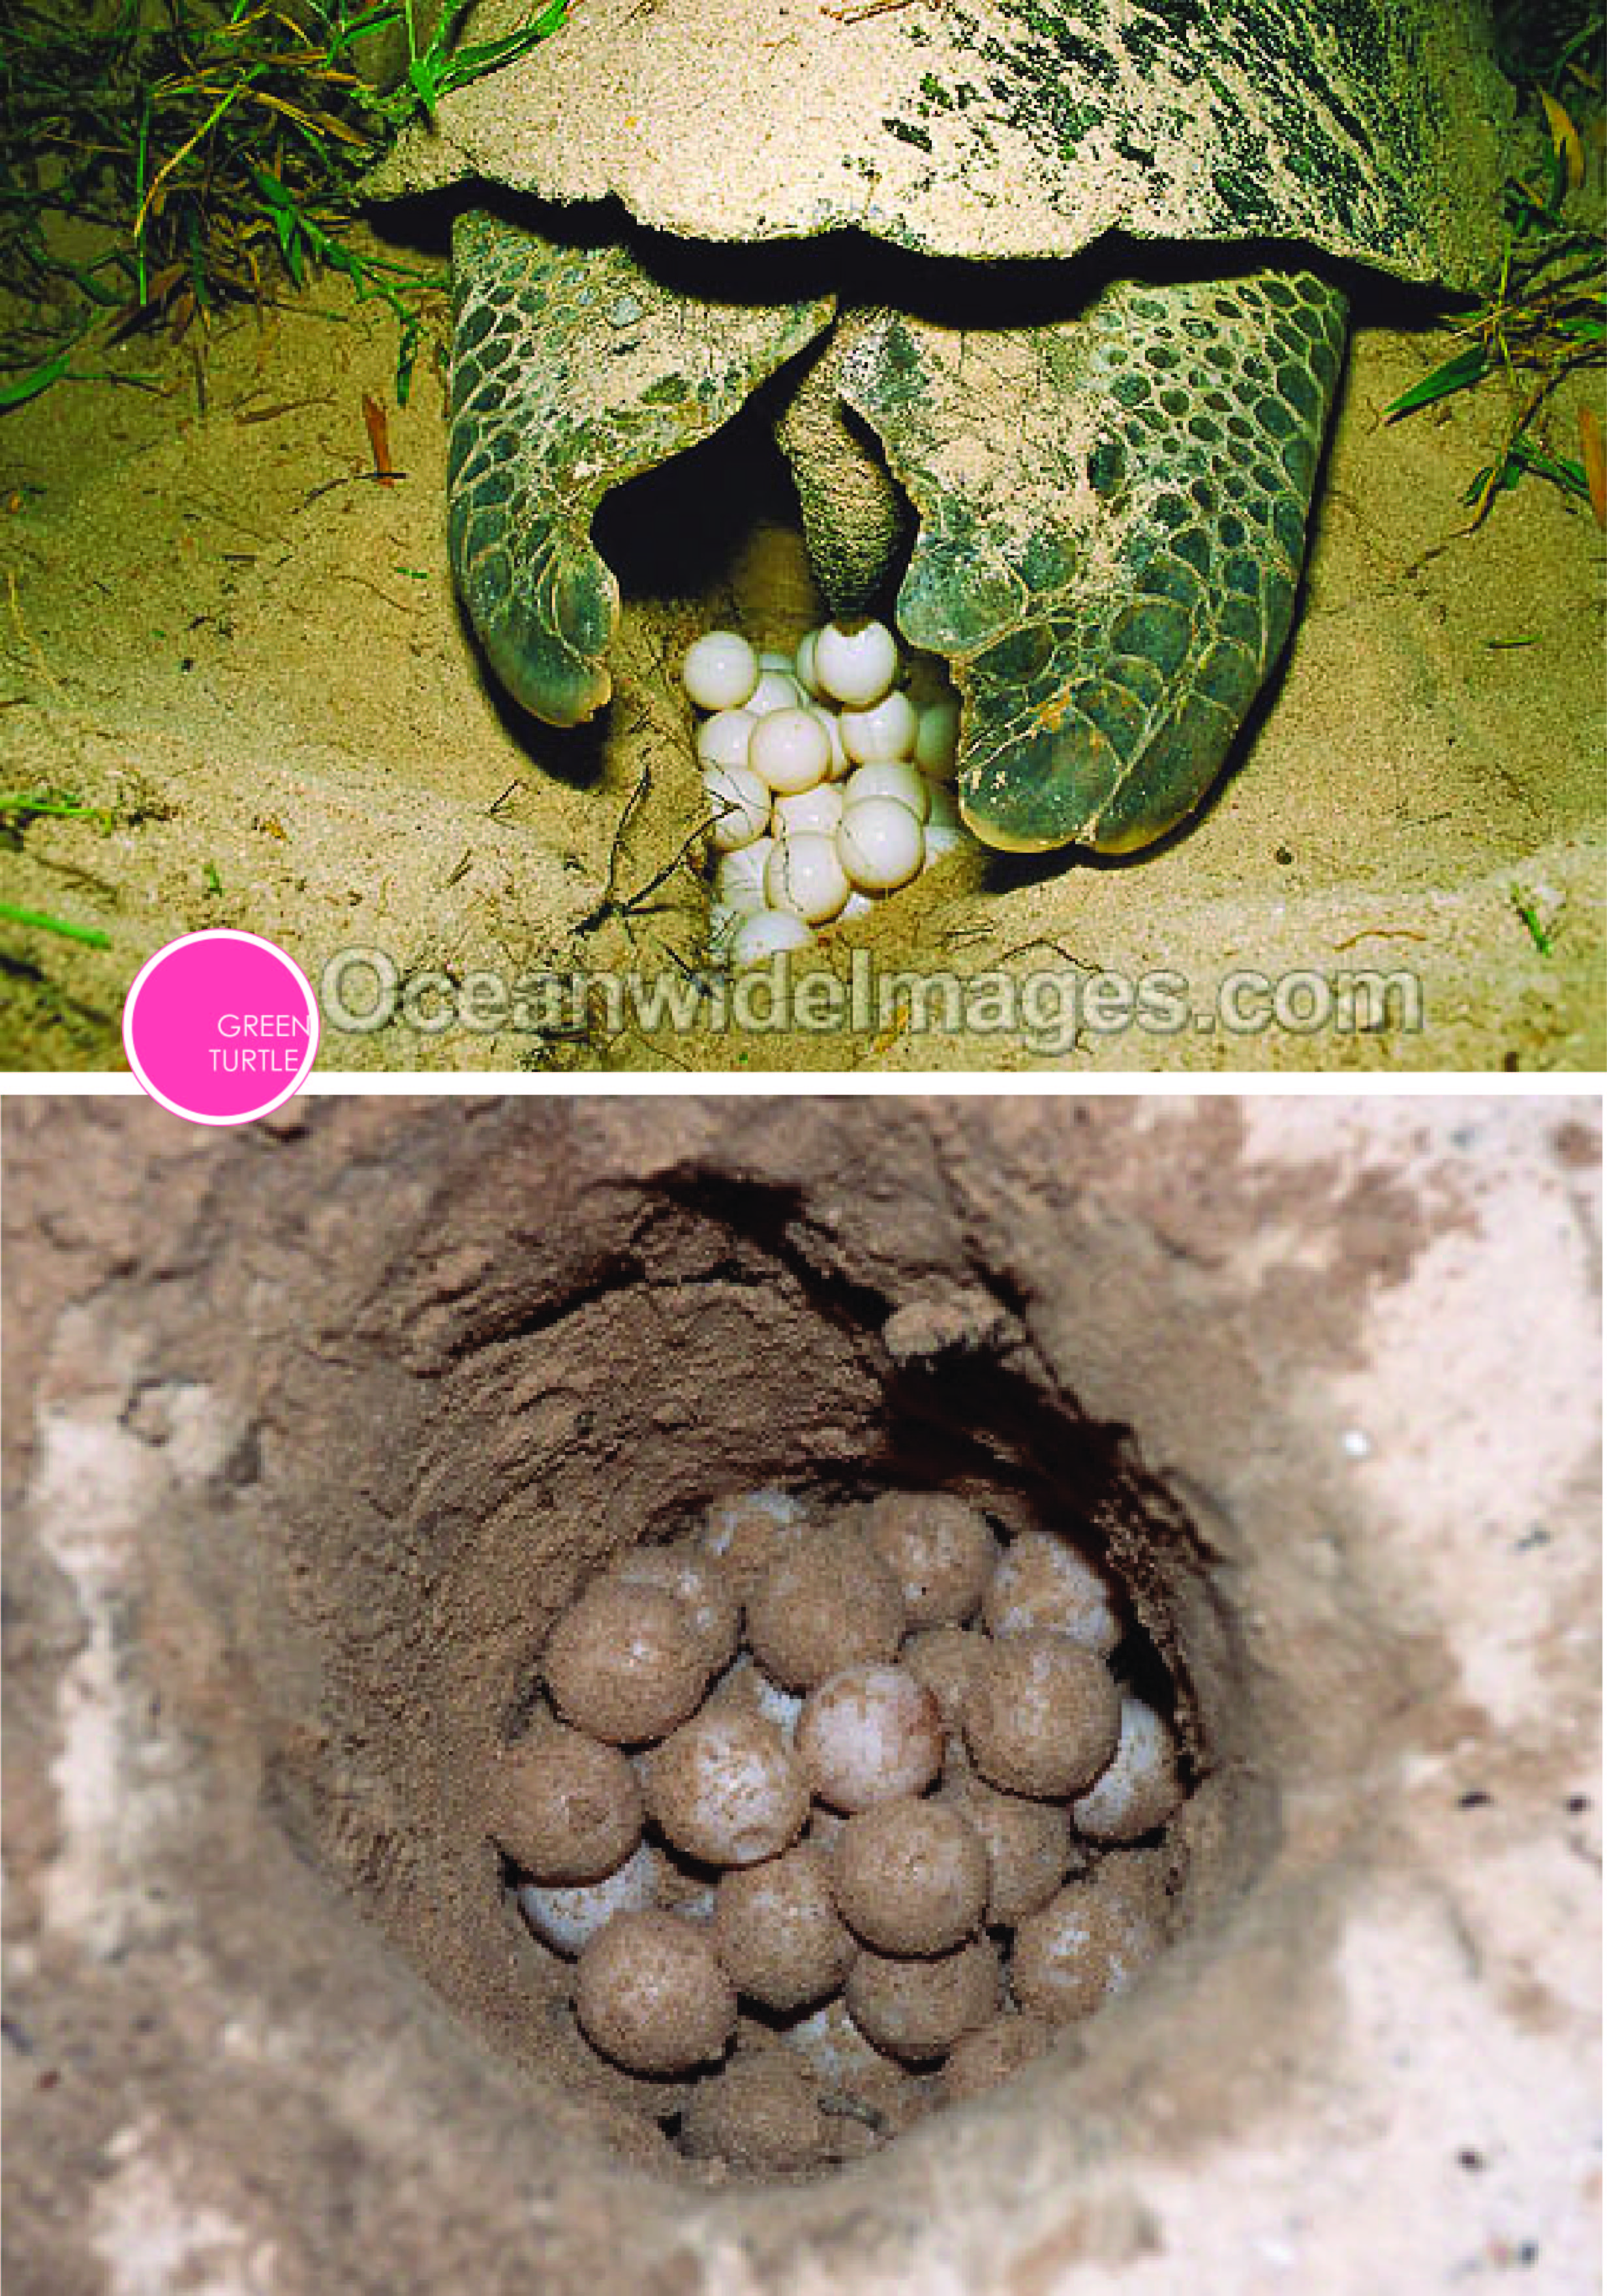 Above are images I found online of what we saw. To protect the turtles, photographs we not allowed. But this gives you an almost perfect representation of what we encountered that night. Click-thru for source.